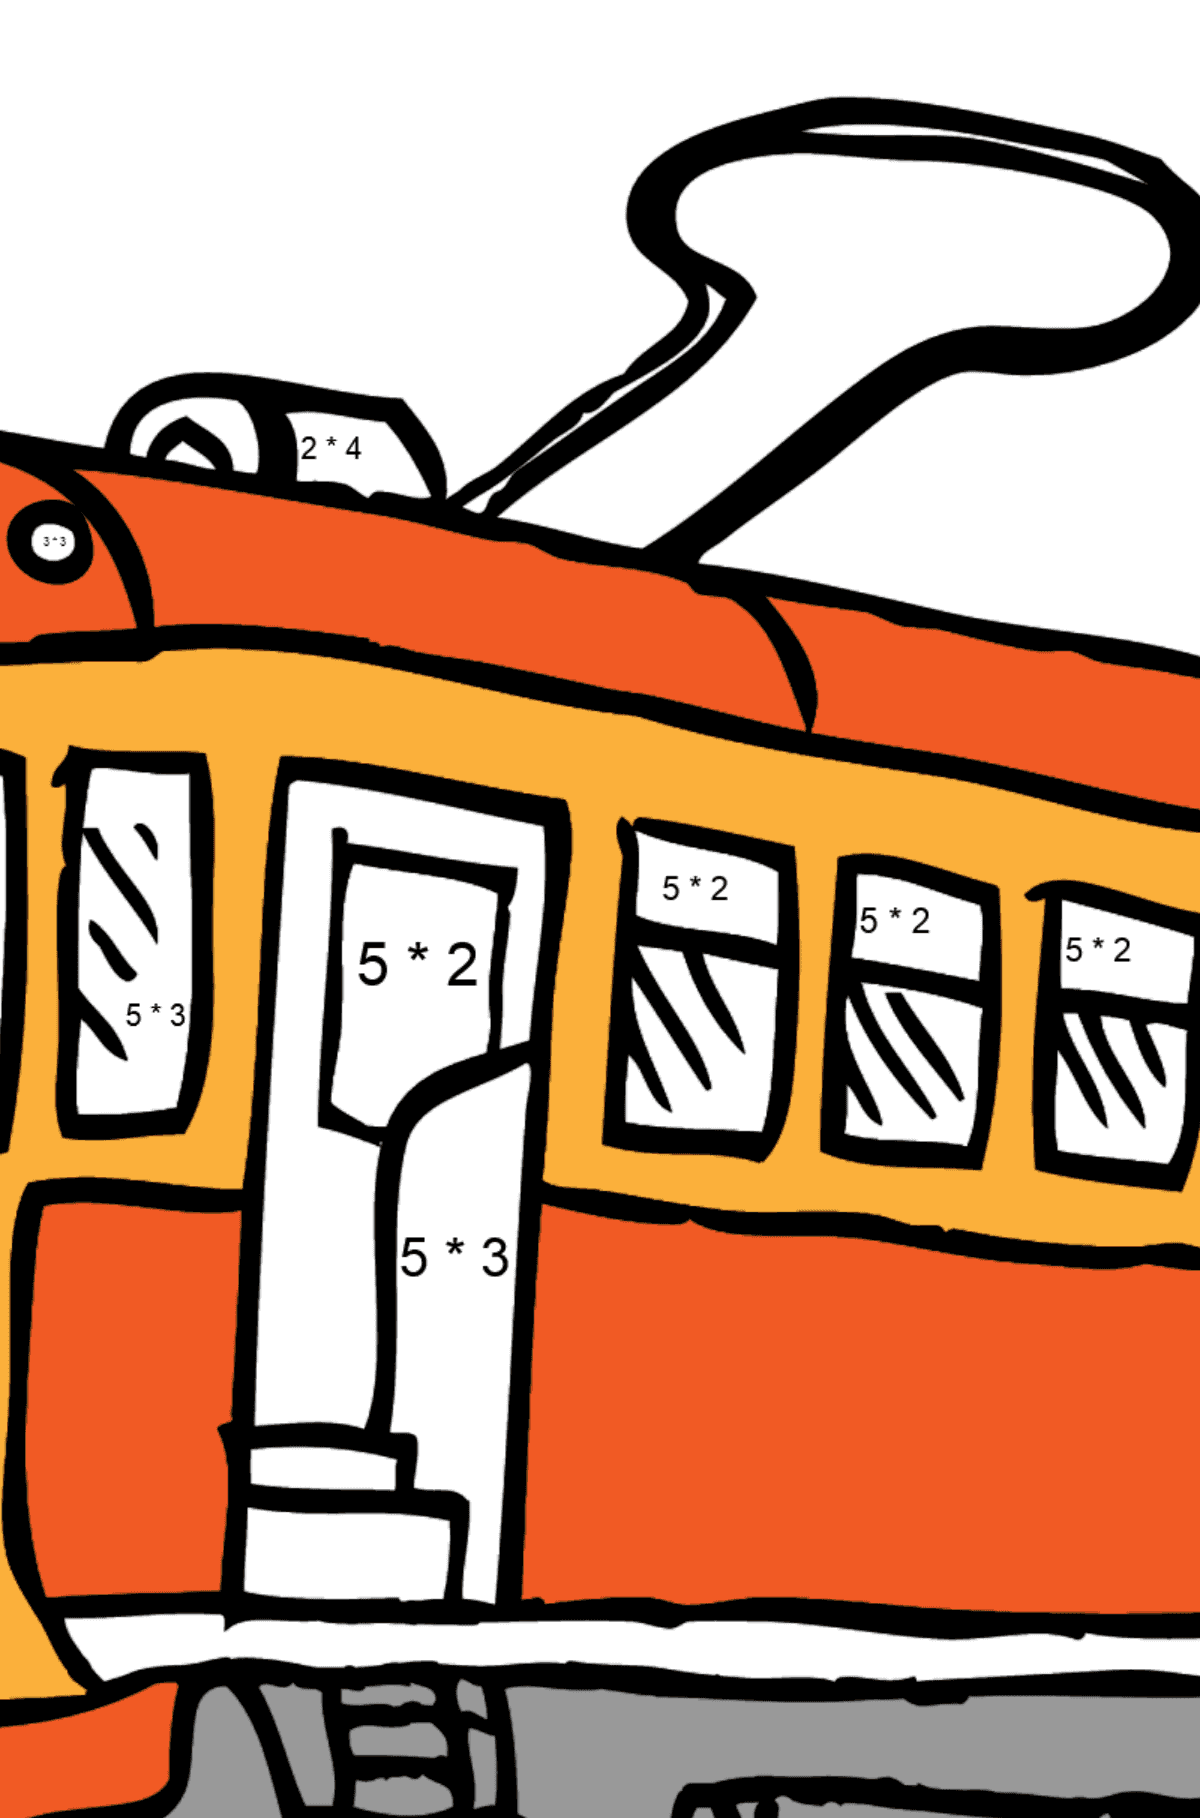 Simple Coloring Page - A Tram is Bored - Math Coloring - Multiplication for Kids